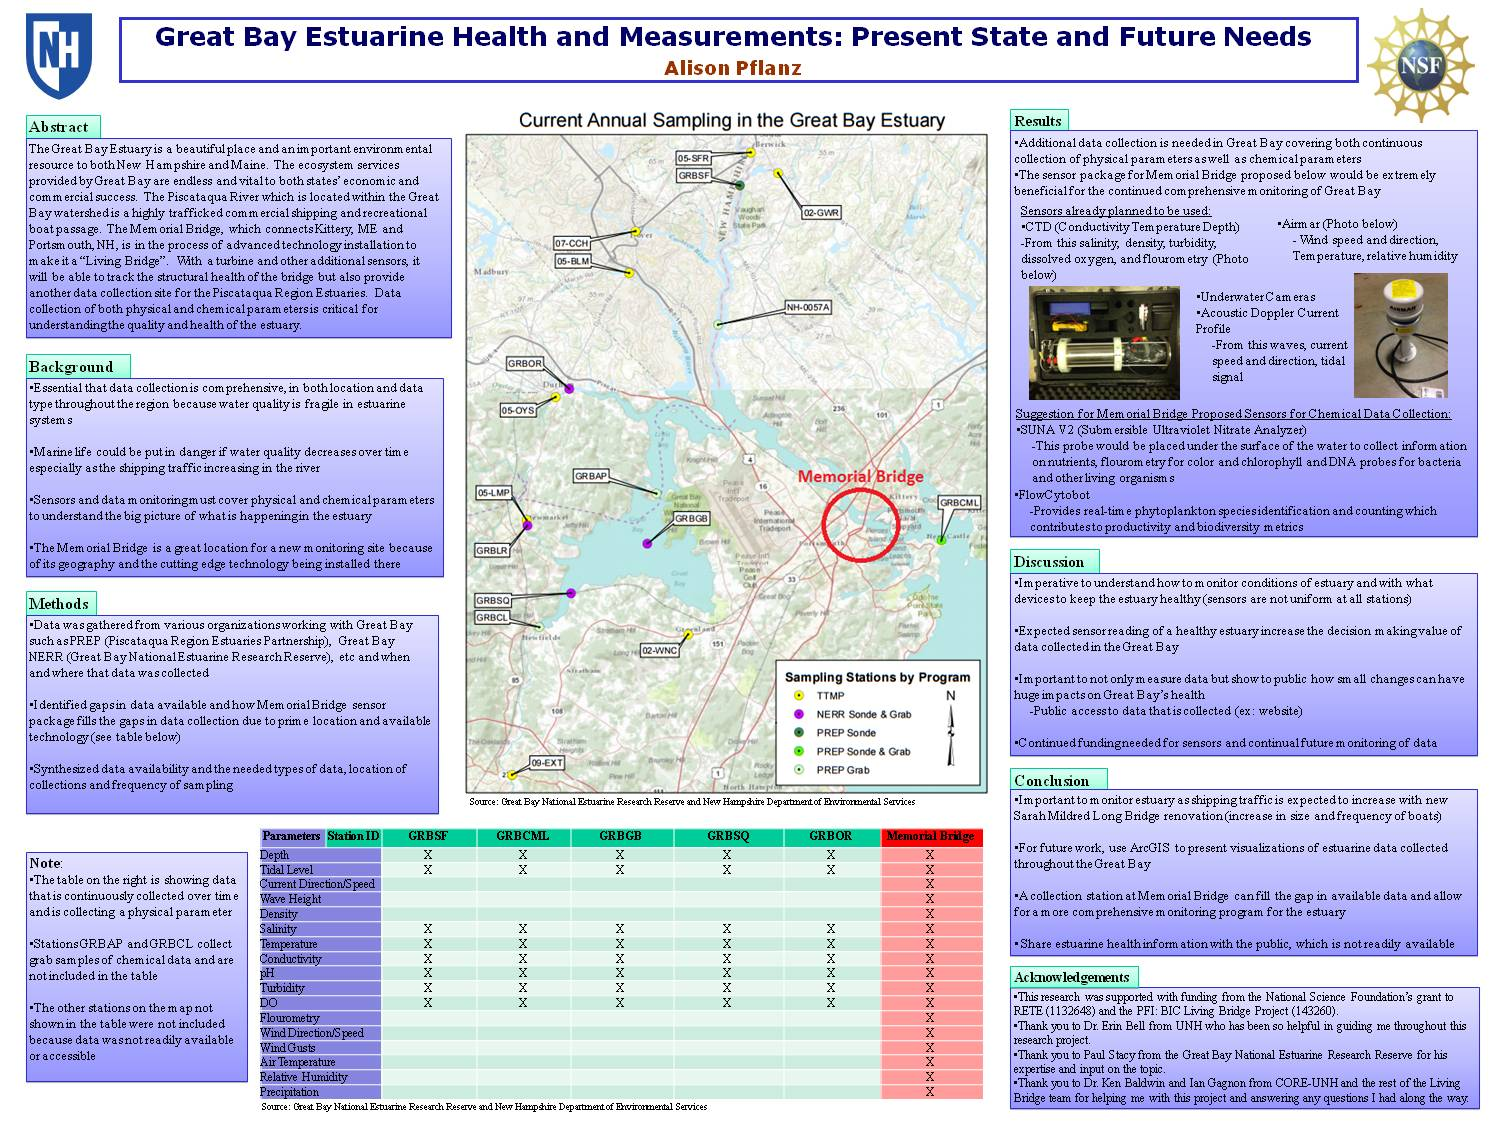 Great Bay Estuarine Health And Measurements: Present State And Future Needs by arm85